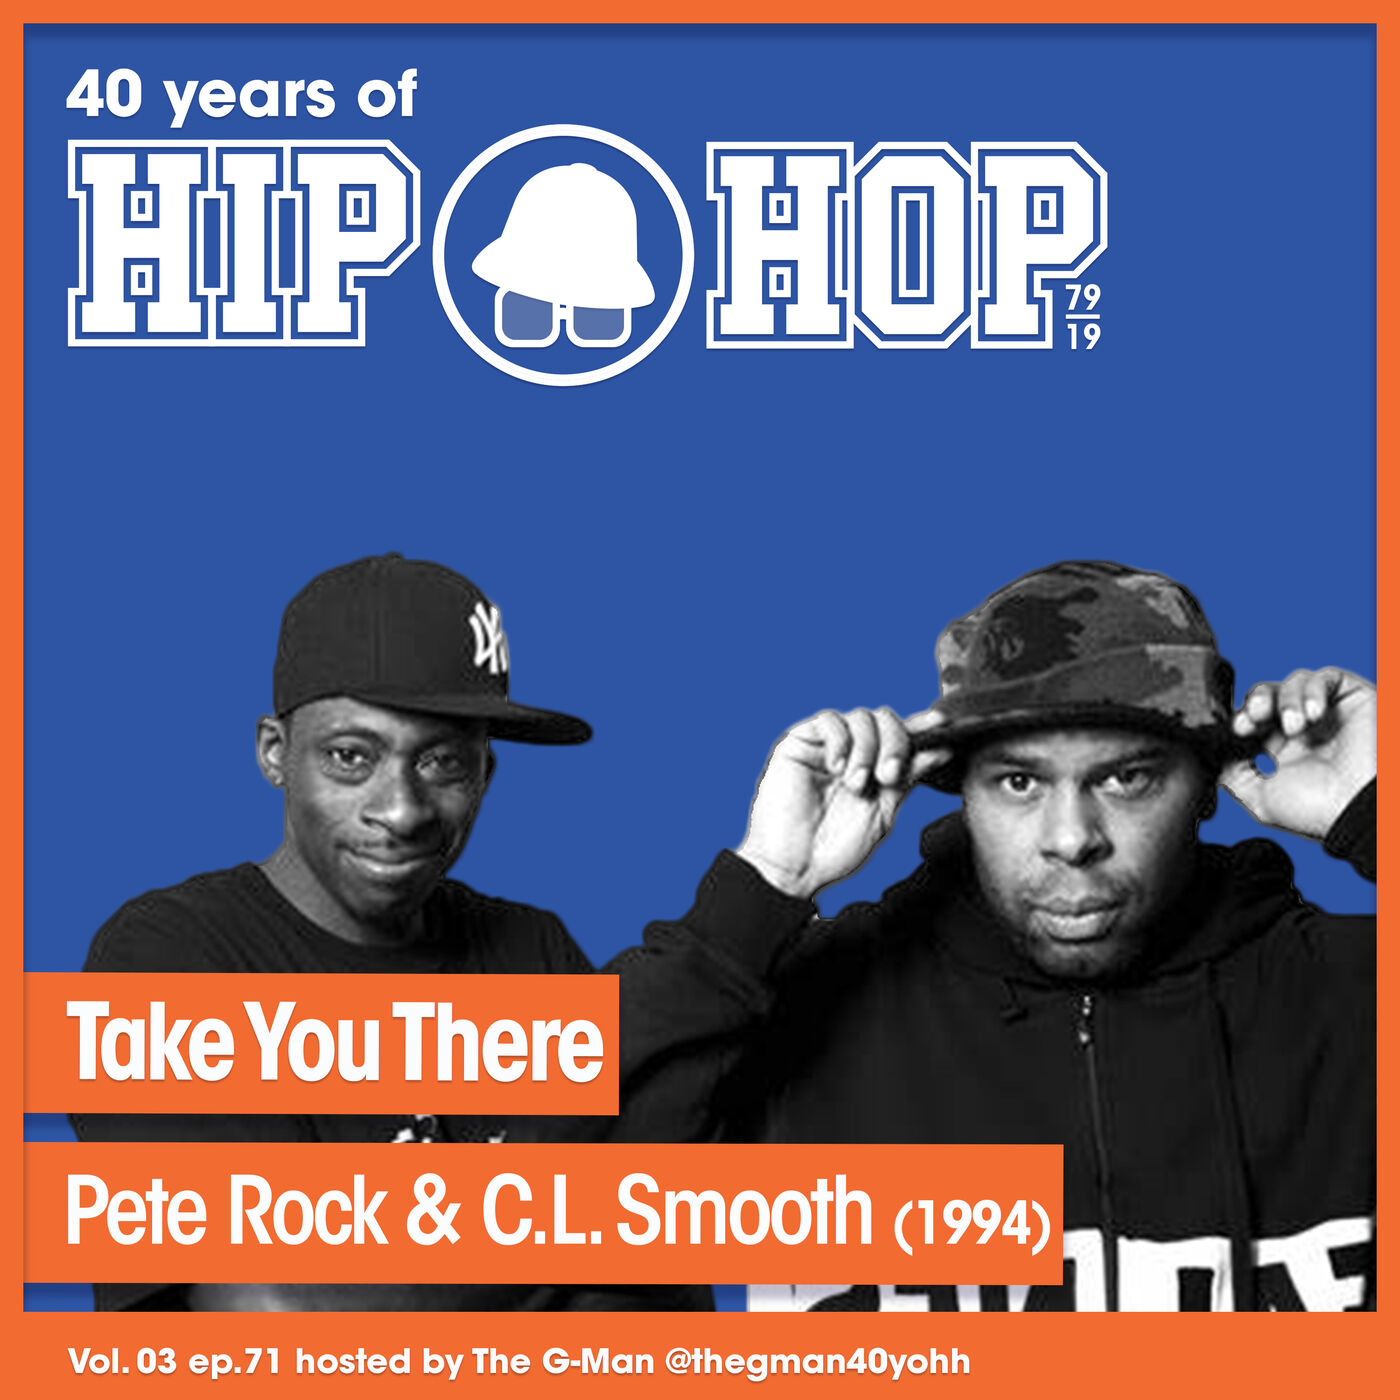 Vol.03 E71 - Take You There by Pete Rock & CL Smooth released in 1994 - 40 Years of Hip Hop